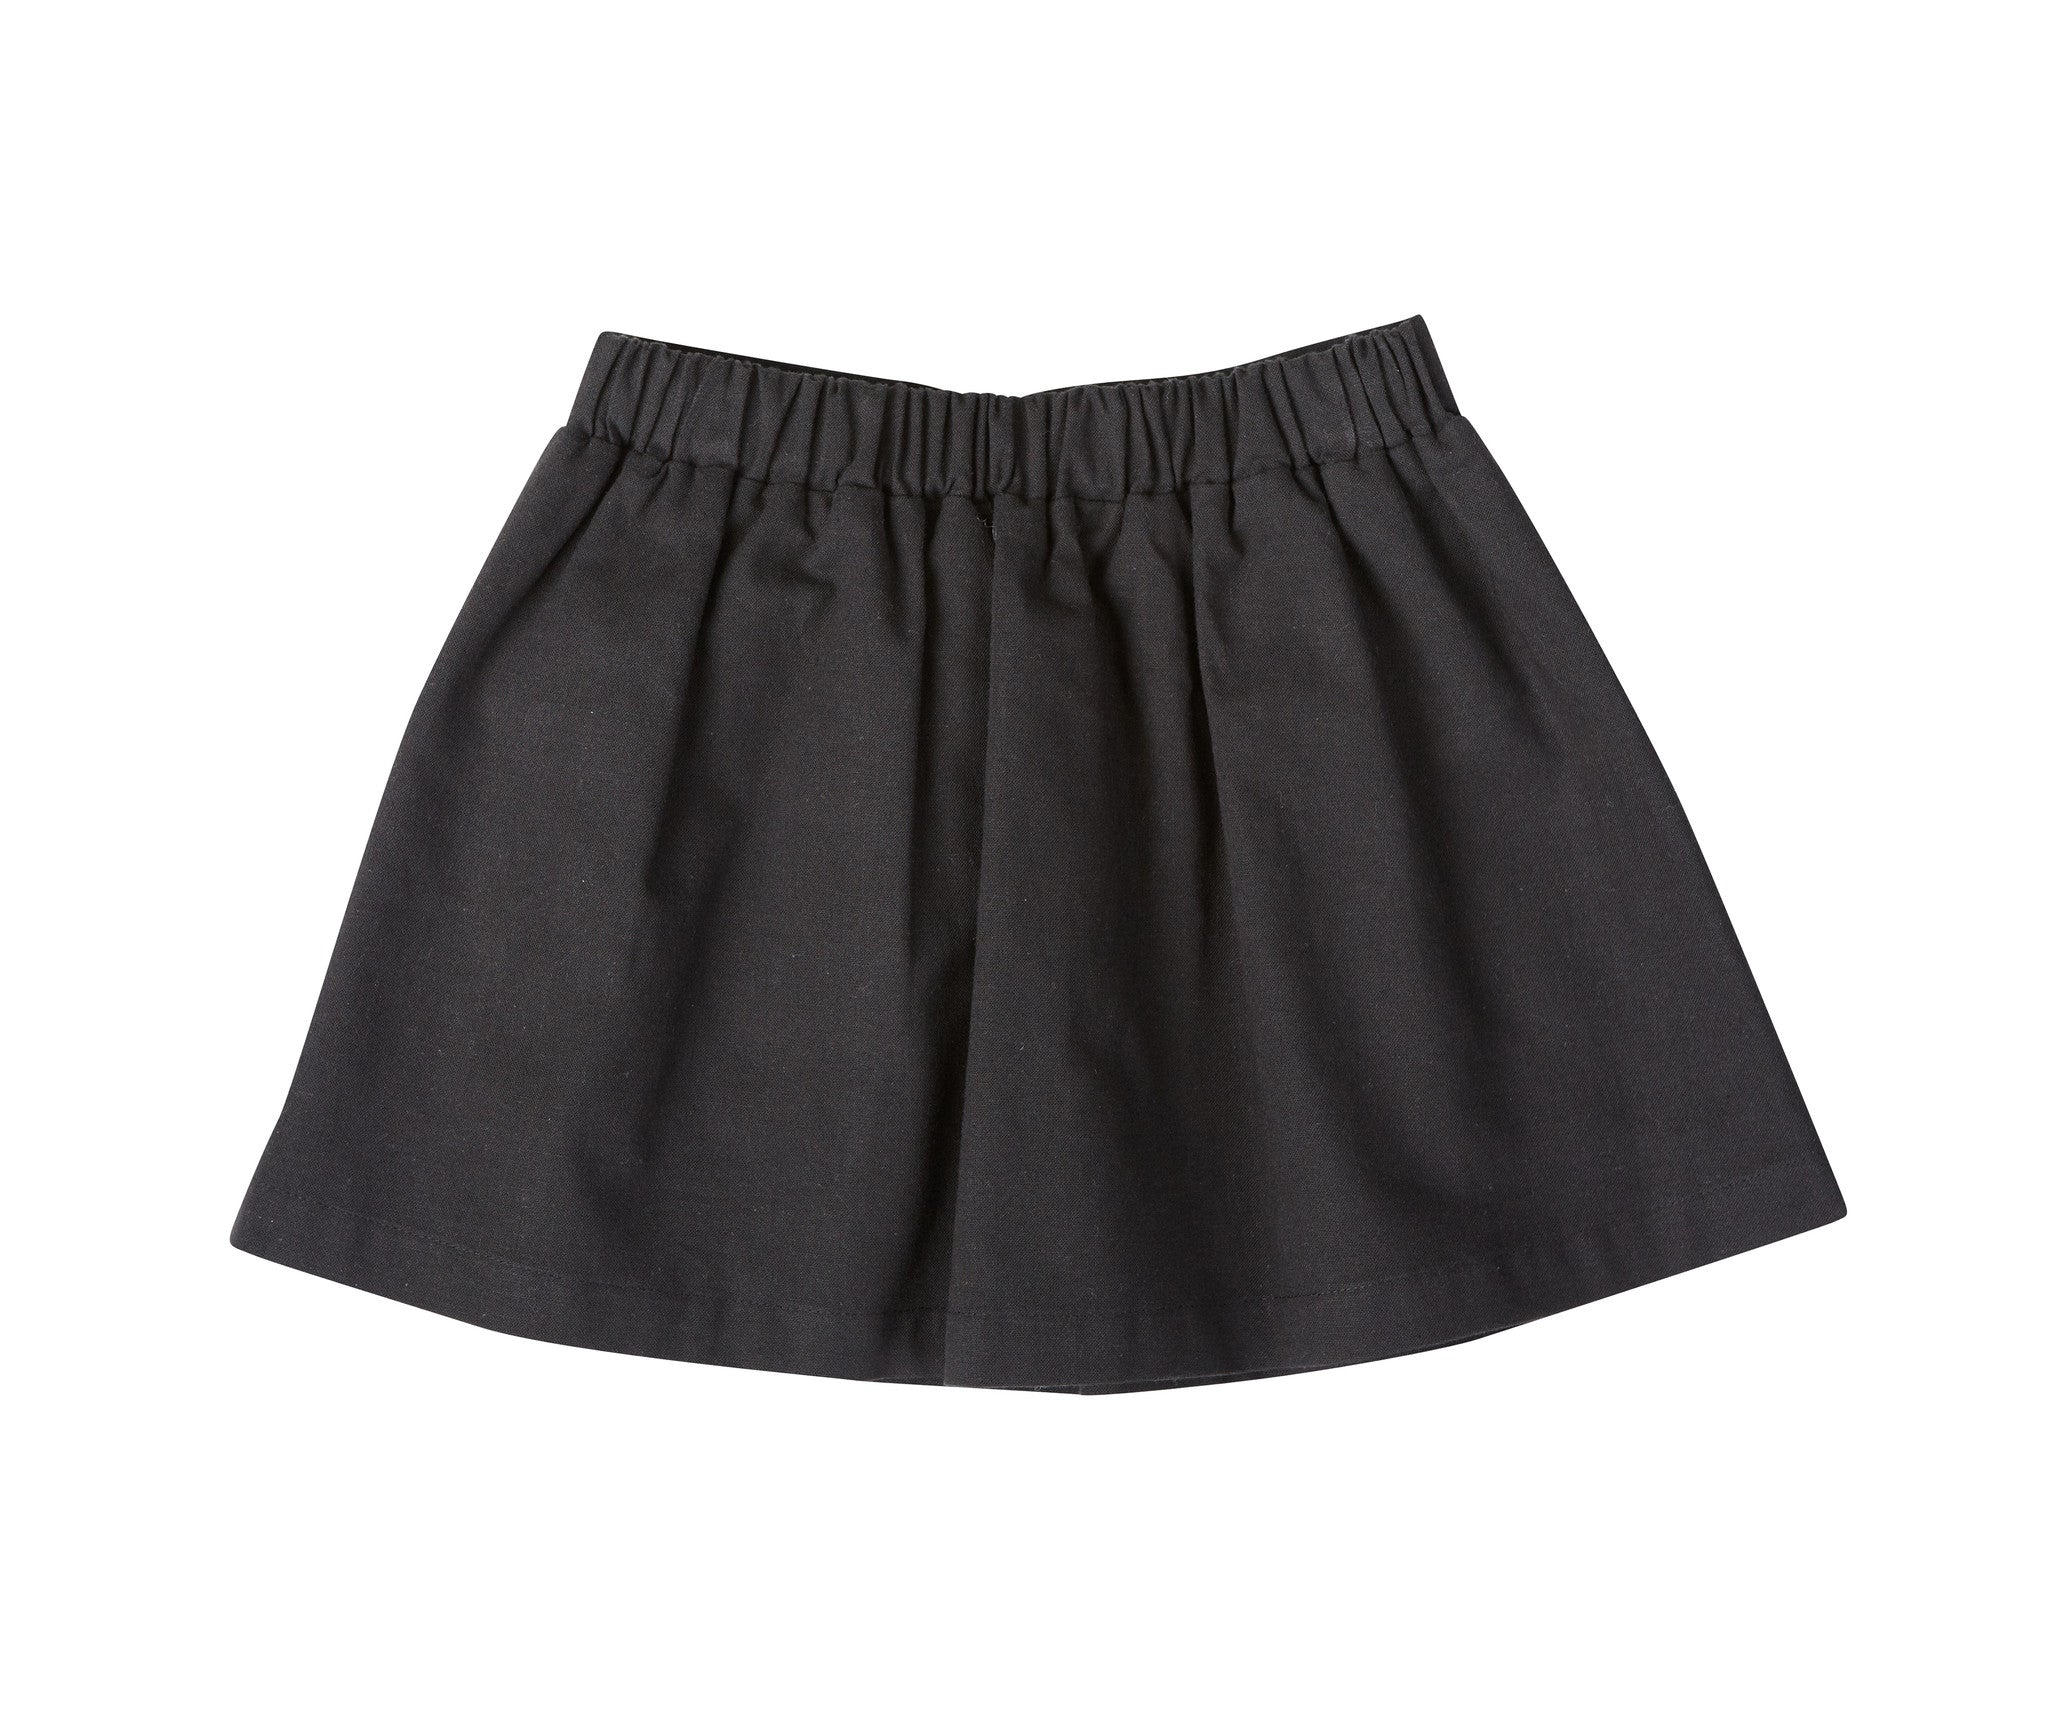 Dinui Adeline Black Skirt